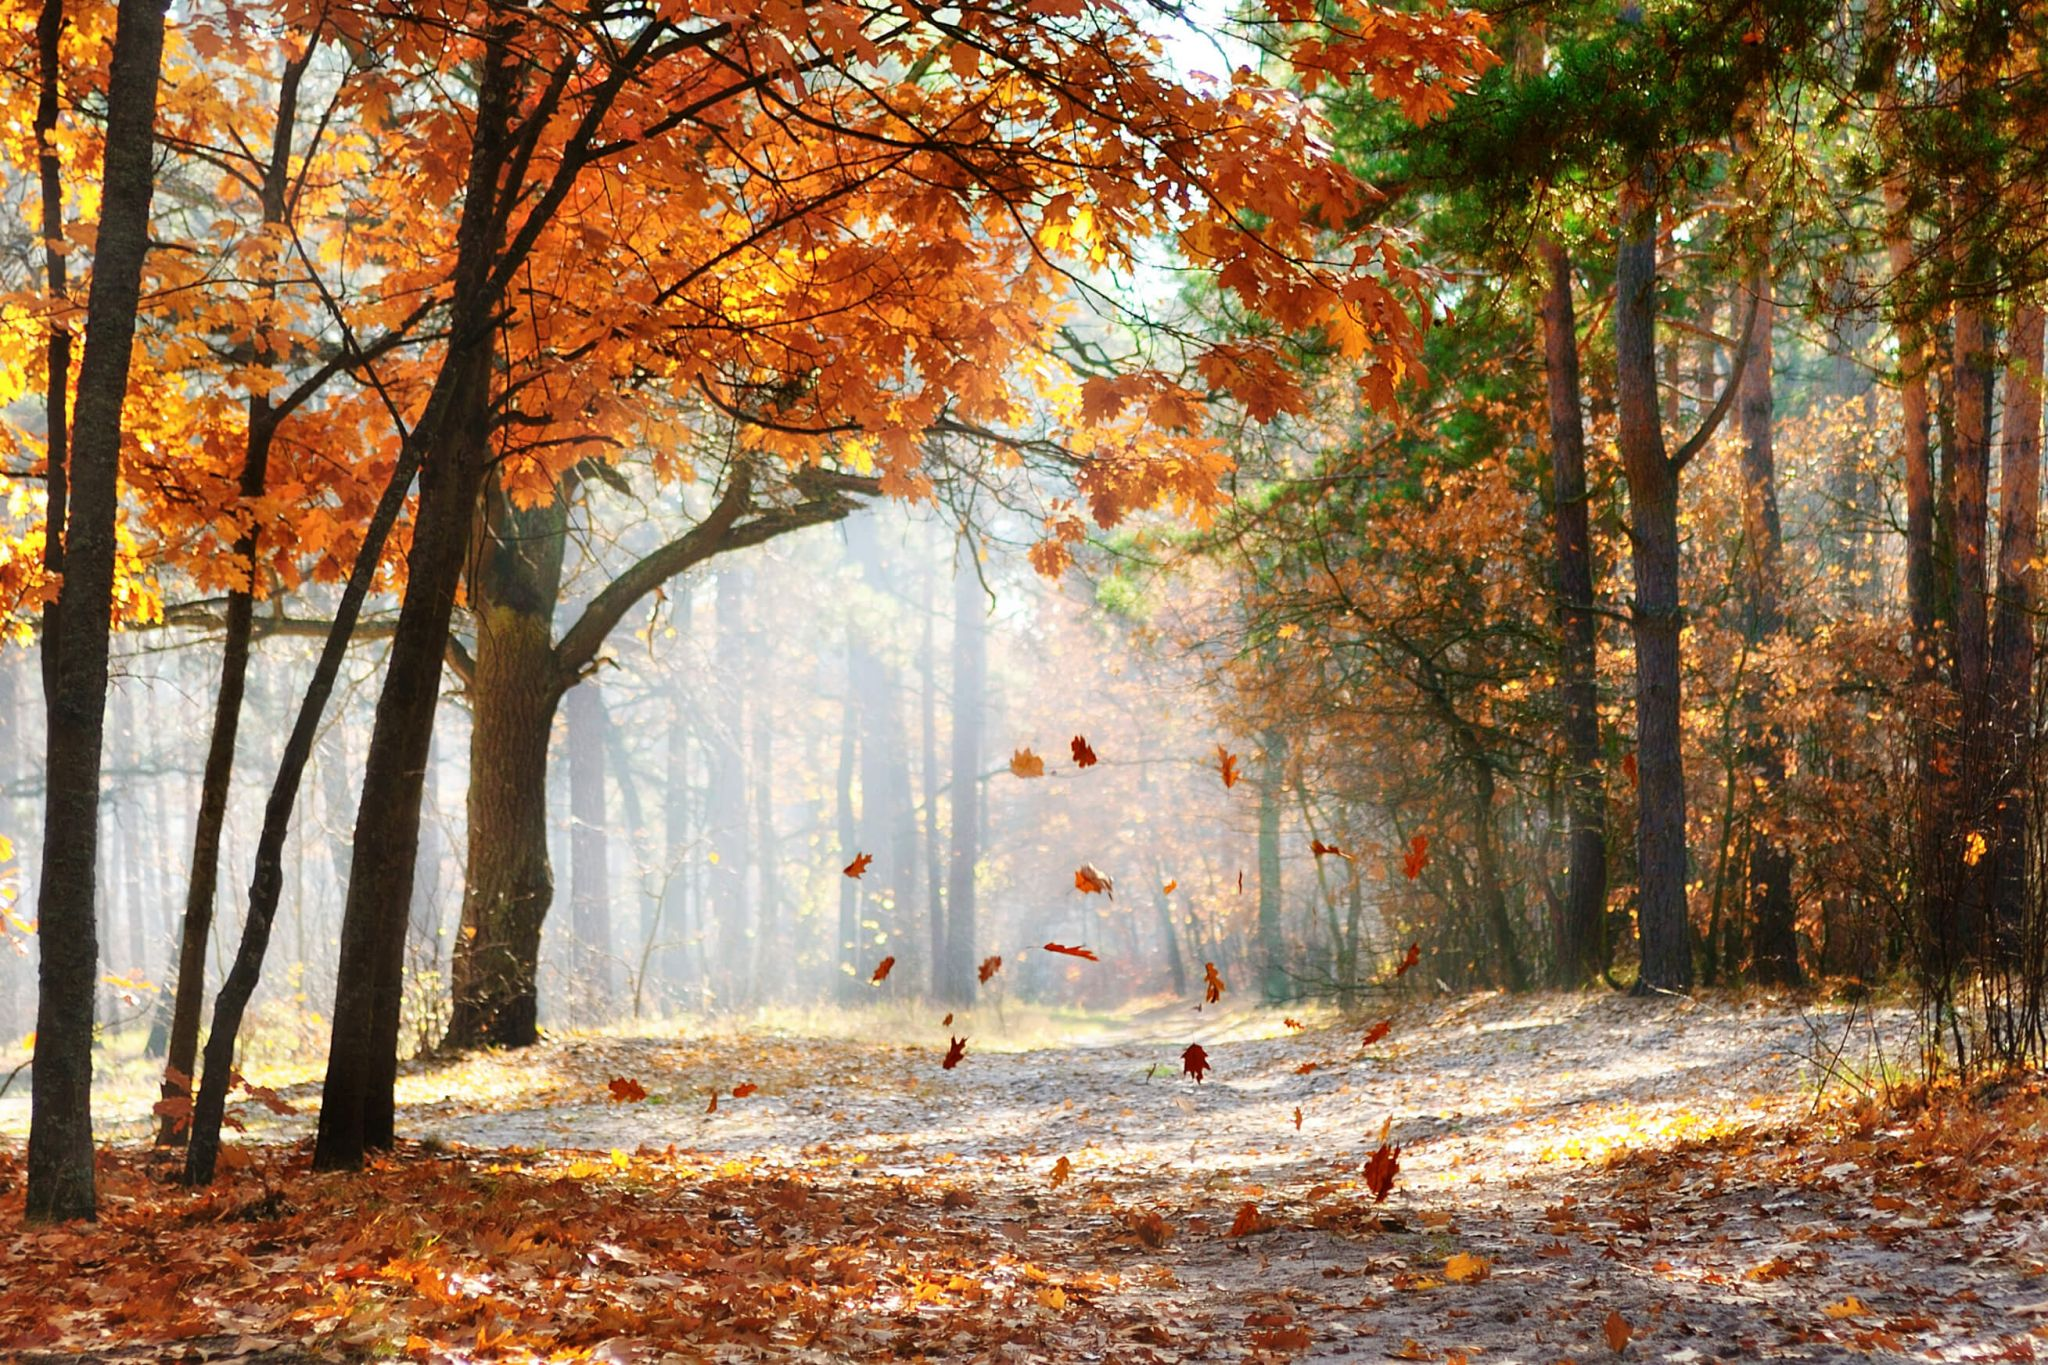 save on your energy bills - autumn woodland scene